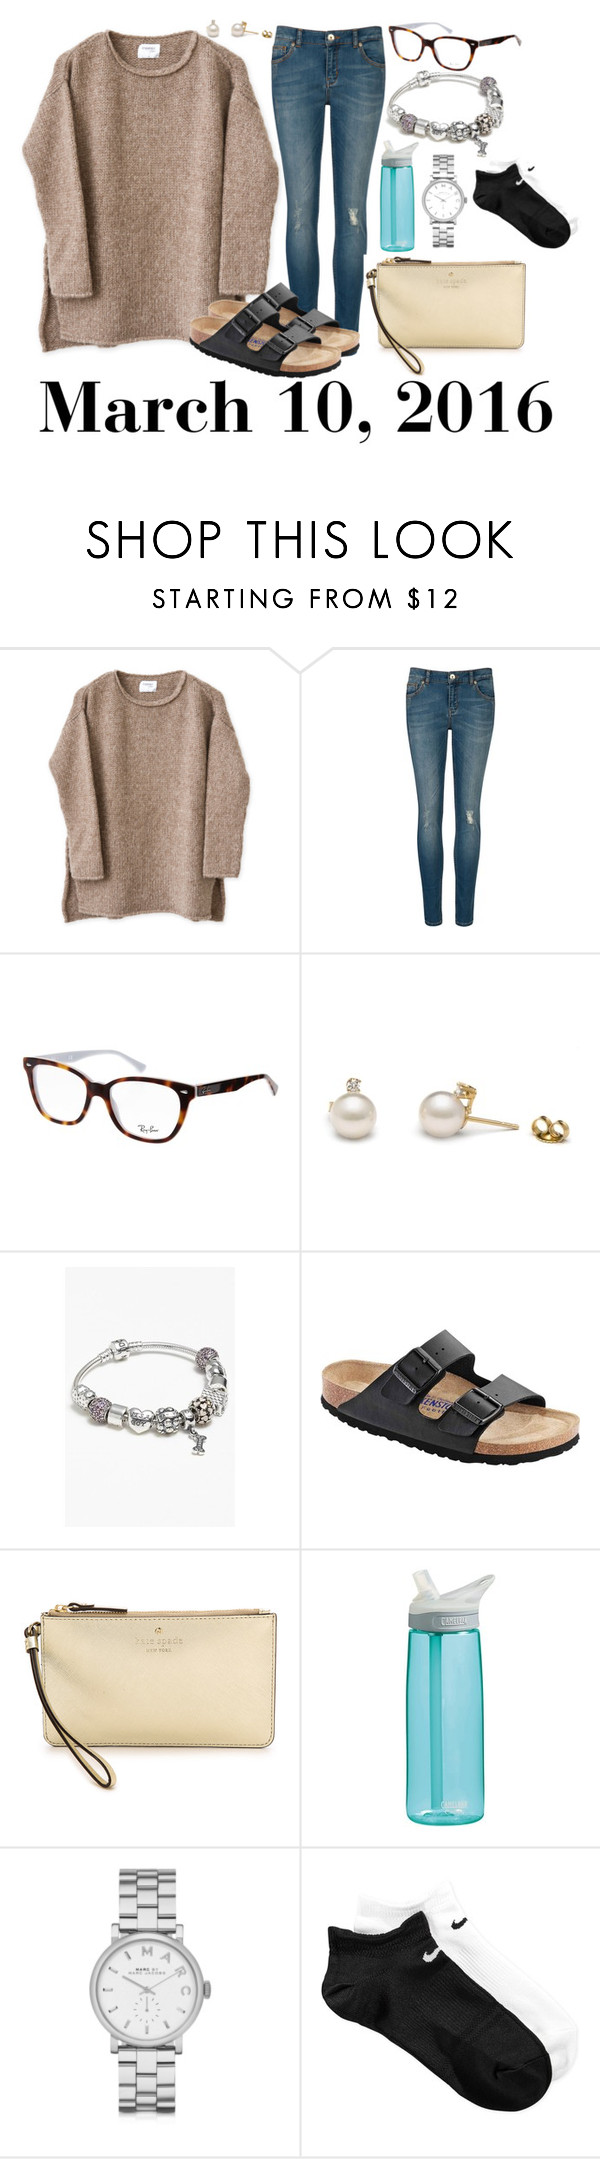 """""""March 10, 2016"""" by jennie-le on Polyvore featuring Ted Baker, Ray-Ban, Pandora, Birkenstock, Kate Spade, CamelBak, Marc by Marc Jacobs, NIKE, women's clothing and women"""